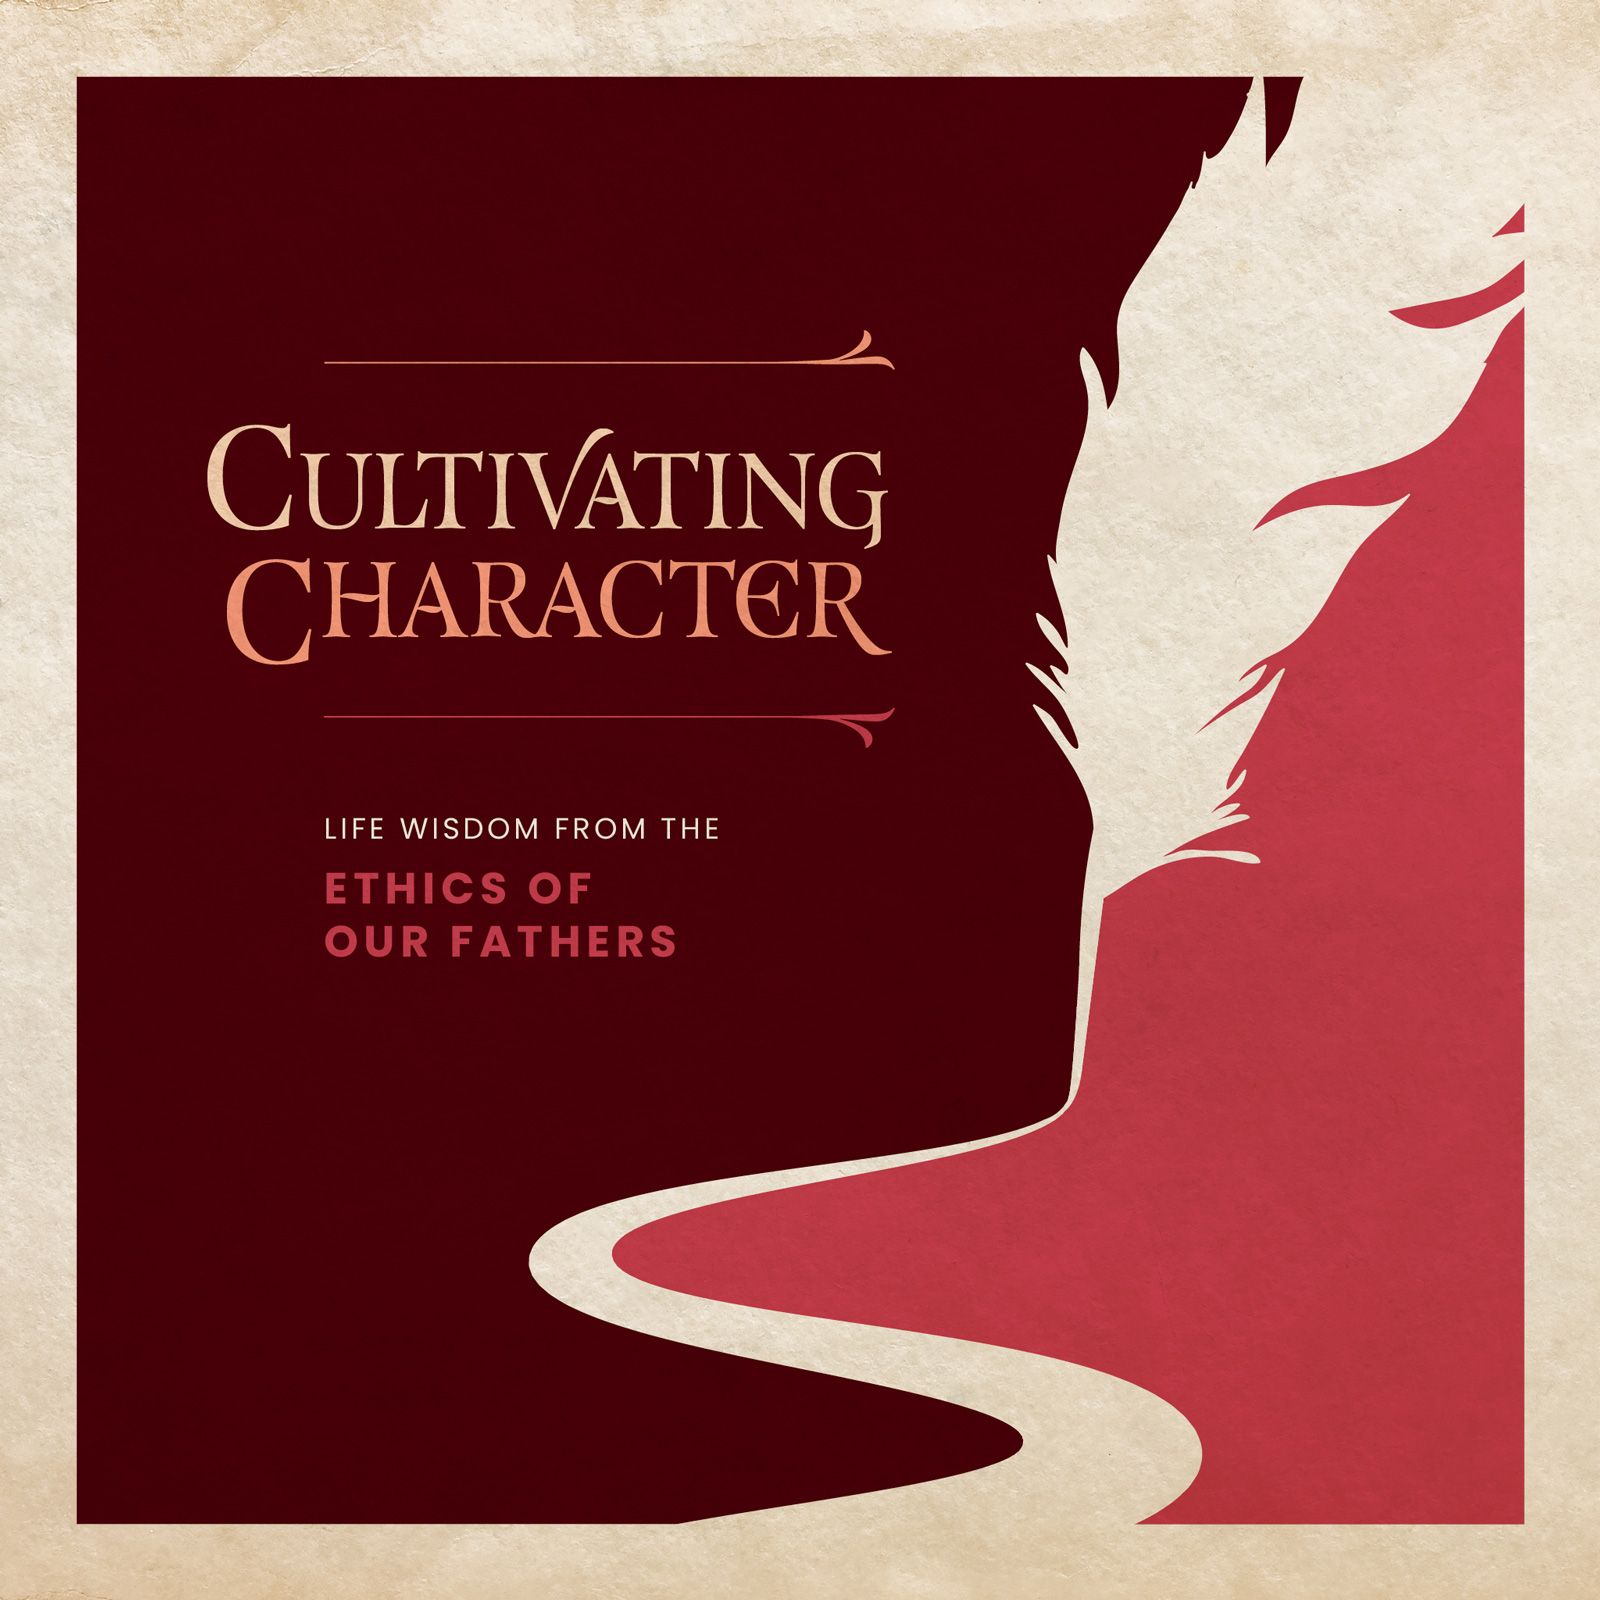 Cultivating Character: Life and Wisdom from the Ethics of our Fathers